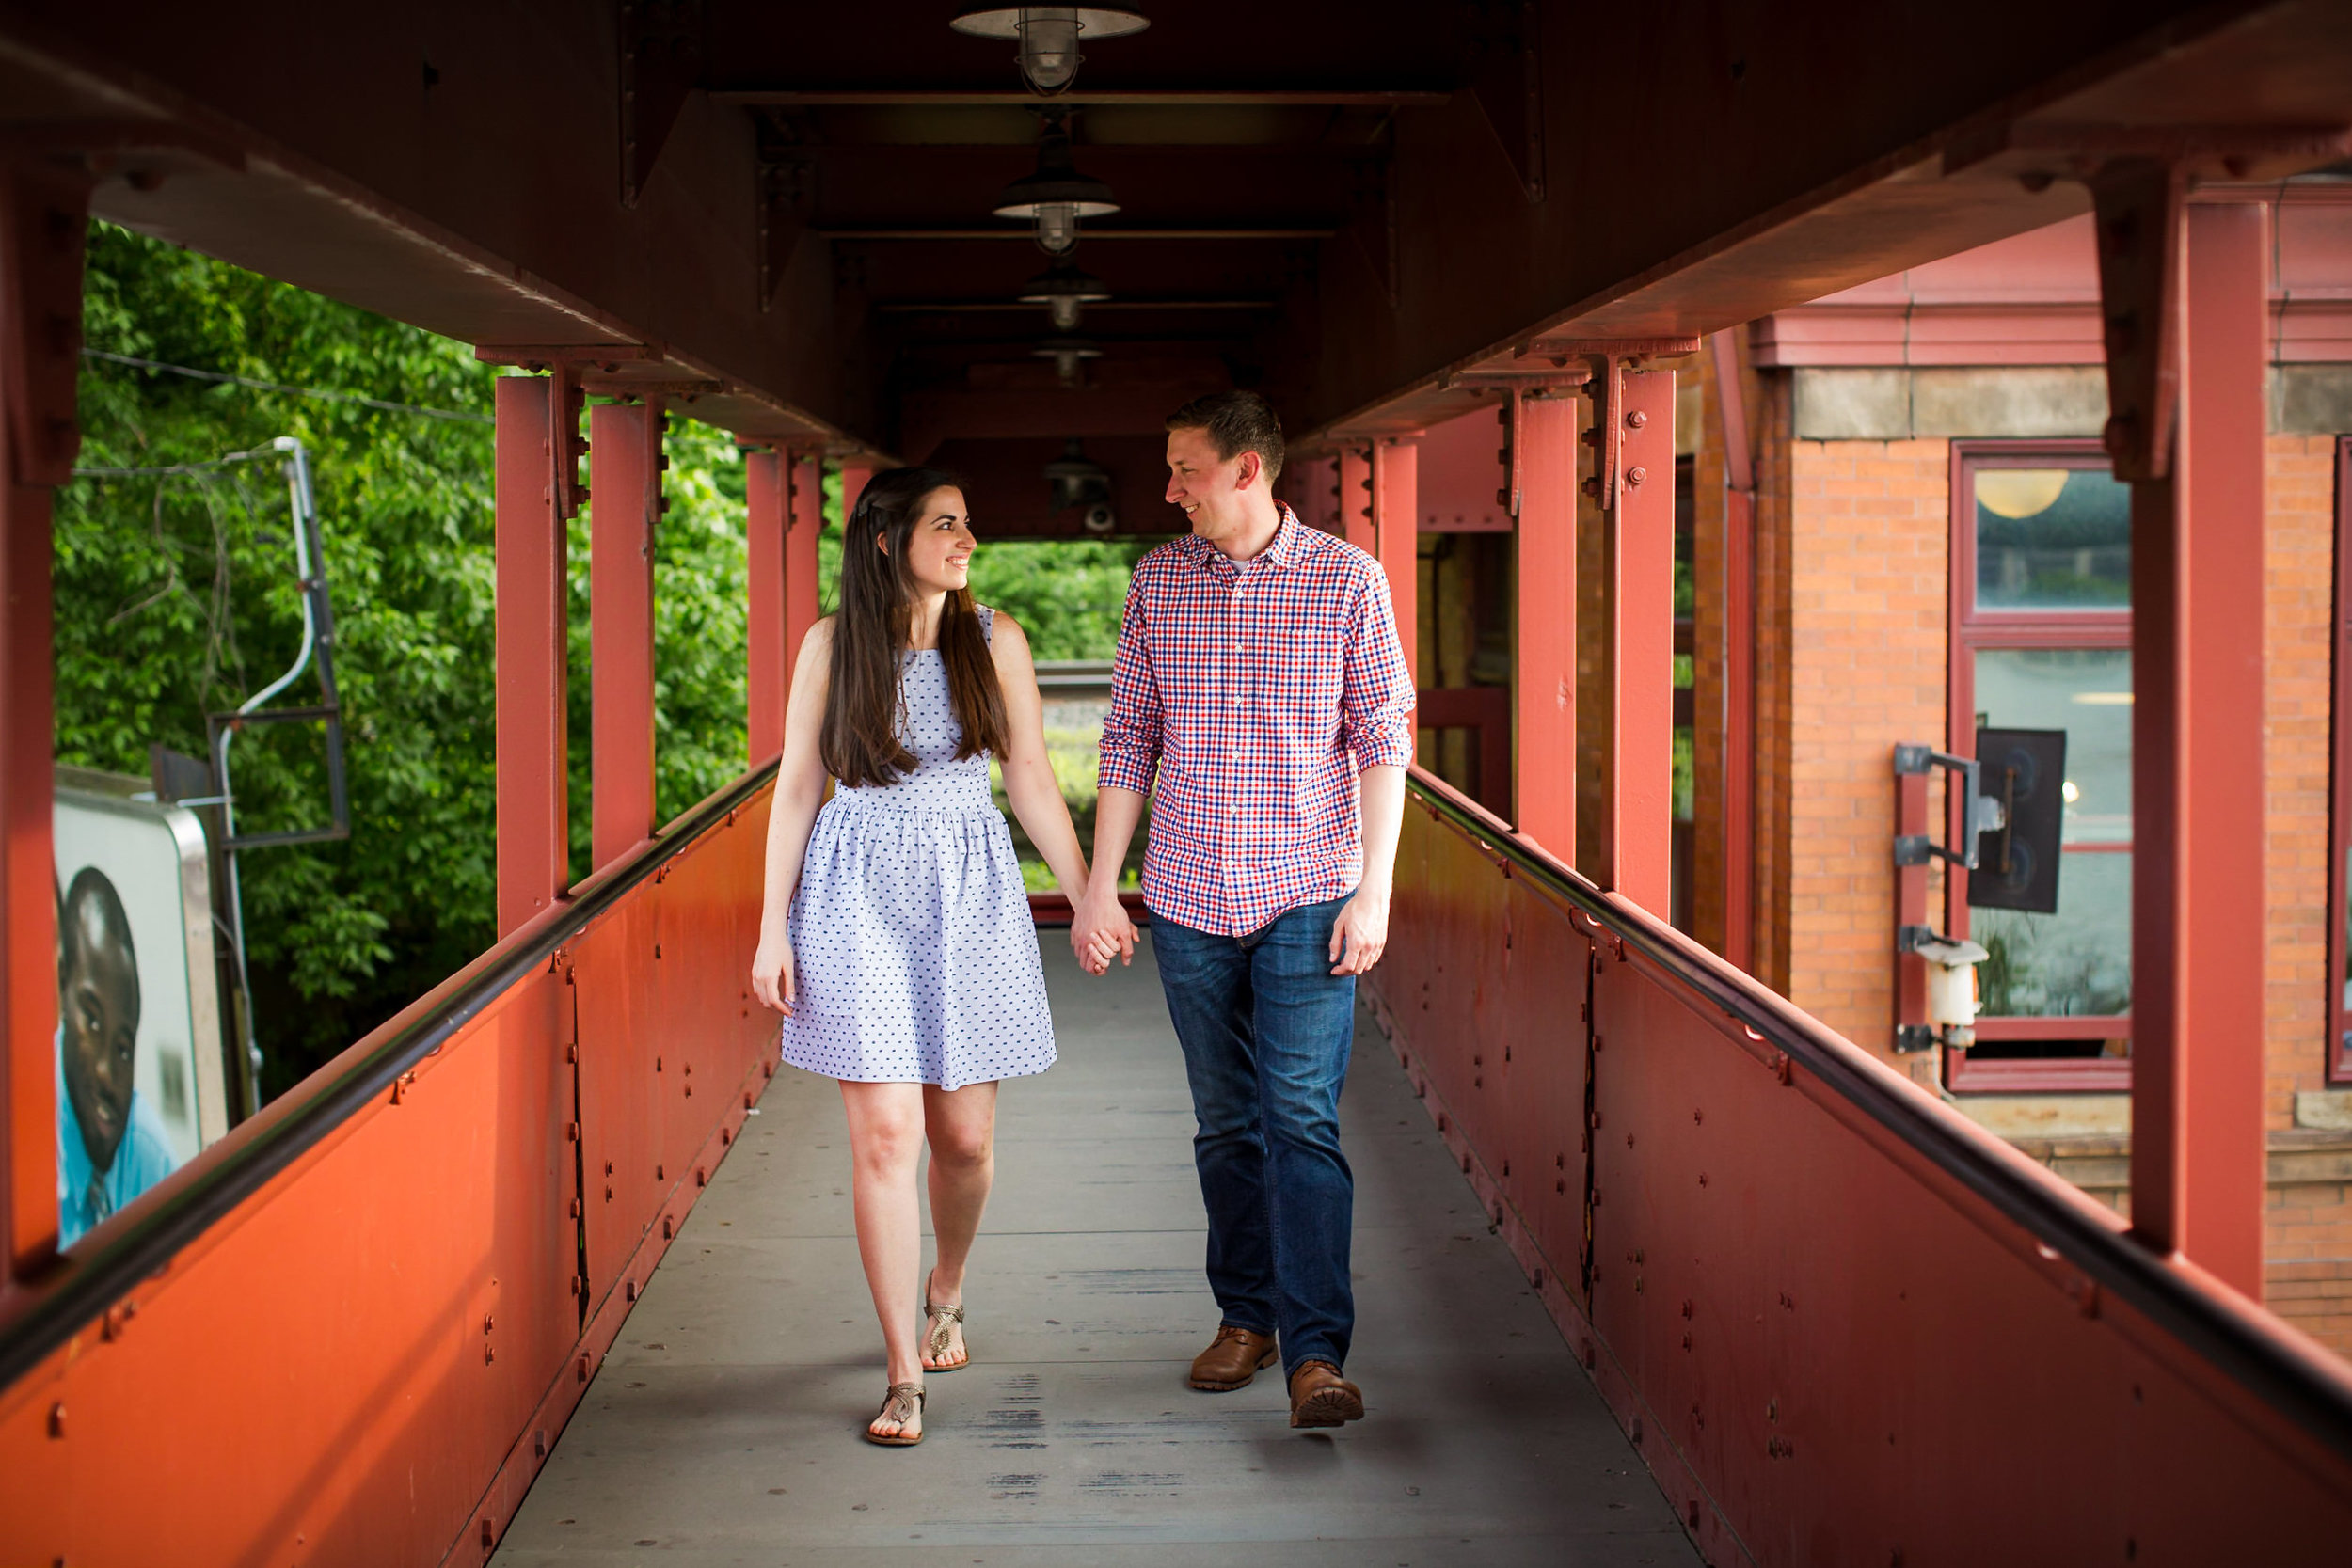 Station Square Duquesne Incline Wedding Engagement Picture locations-3.jpg